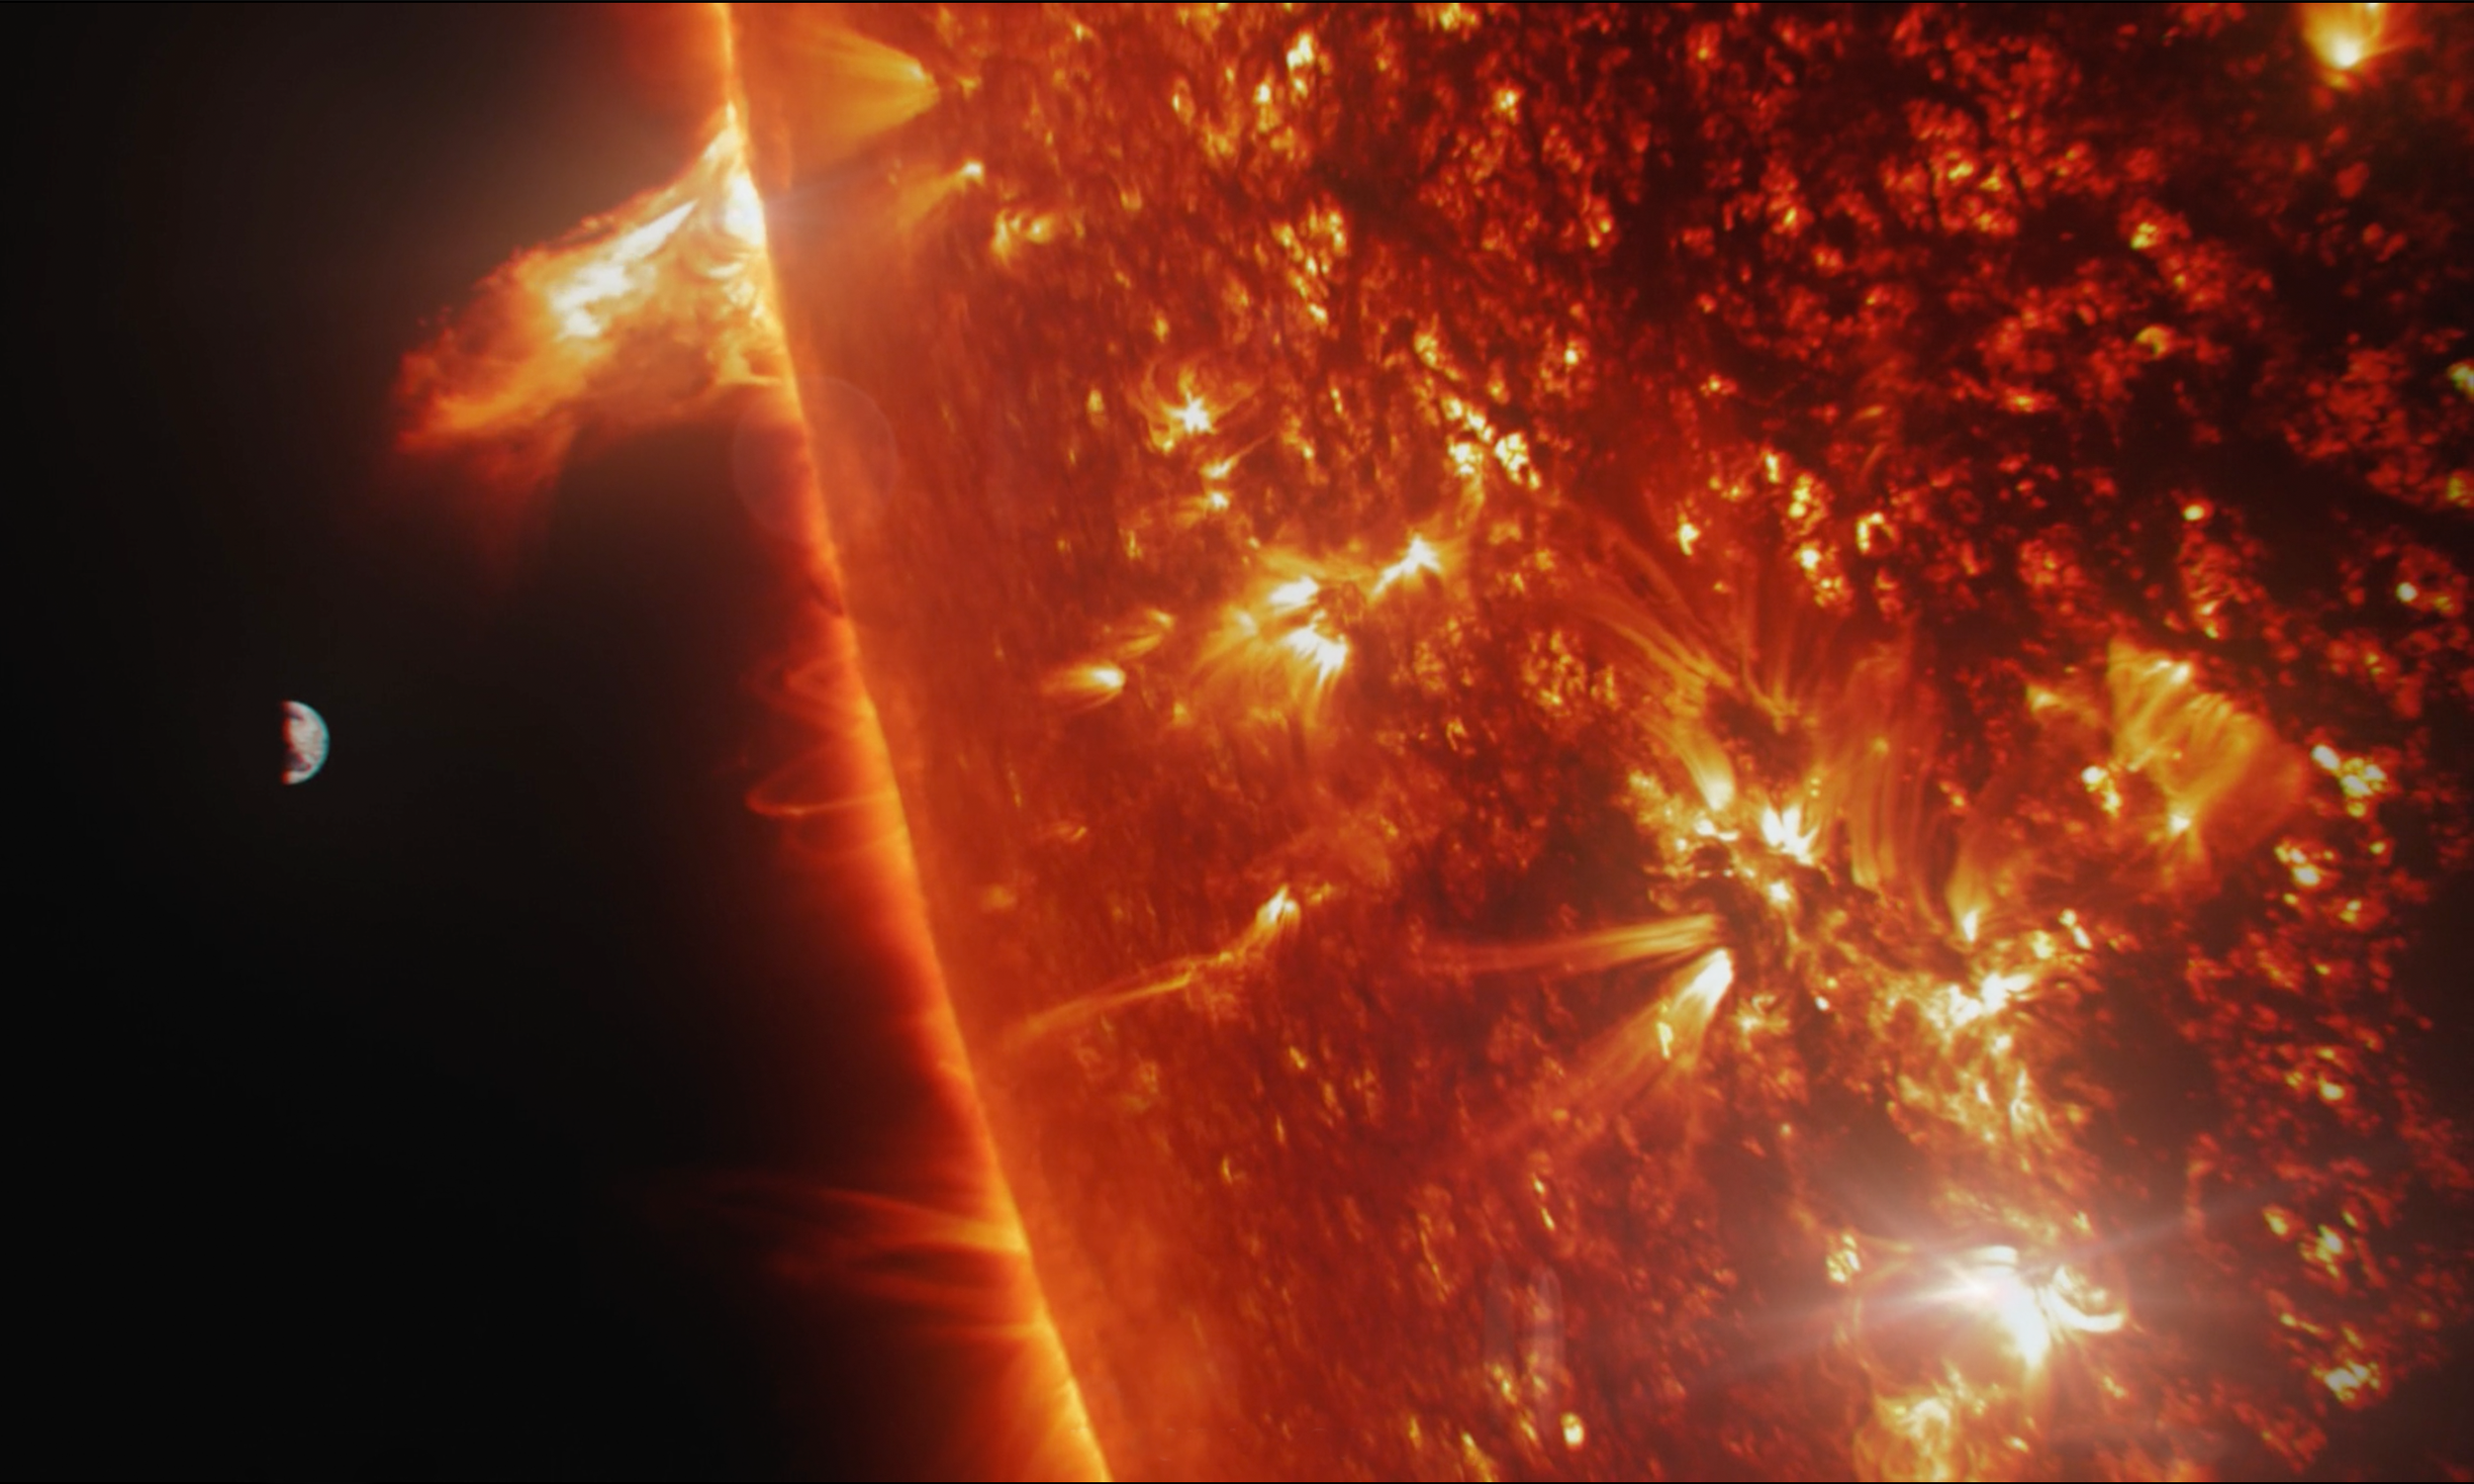 In a sequence  of shots revealing the Earth's core,Moonraker analysed detailed imagery of the sun as a starting point and then developed a look that felt unique and unfamiliar. Technically these challenges were overcome by using Houdini for complex simulations of fluids and motions which depicted the intense energy generated within the centre of the earth, a bit like a huge plasma dynamo.